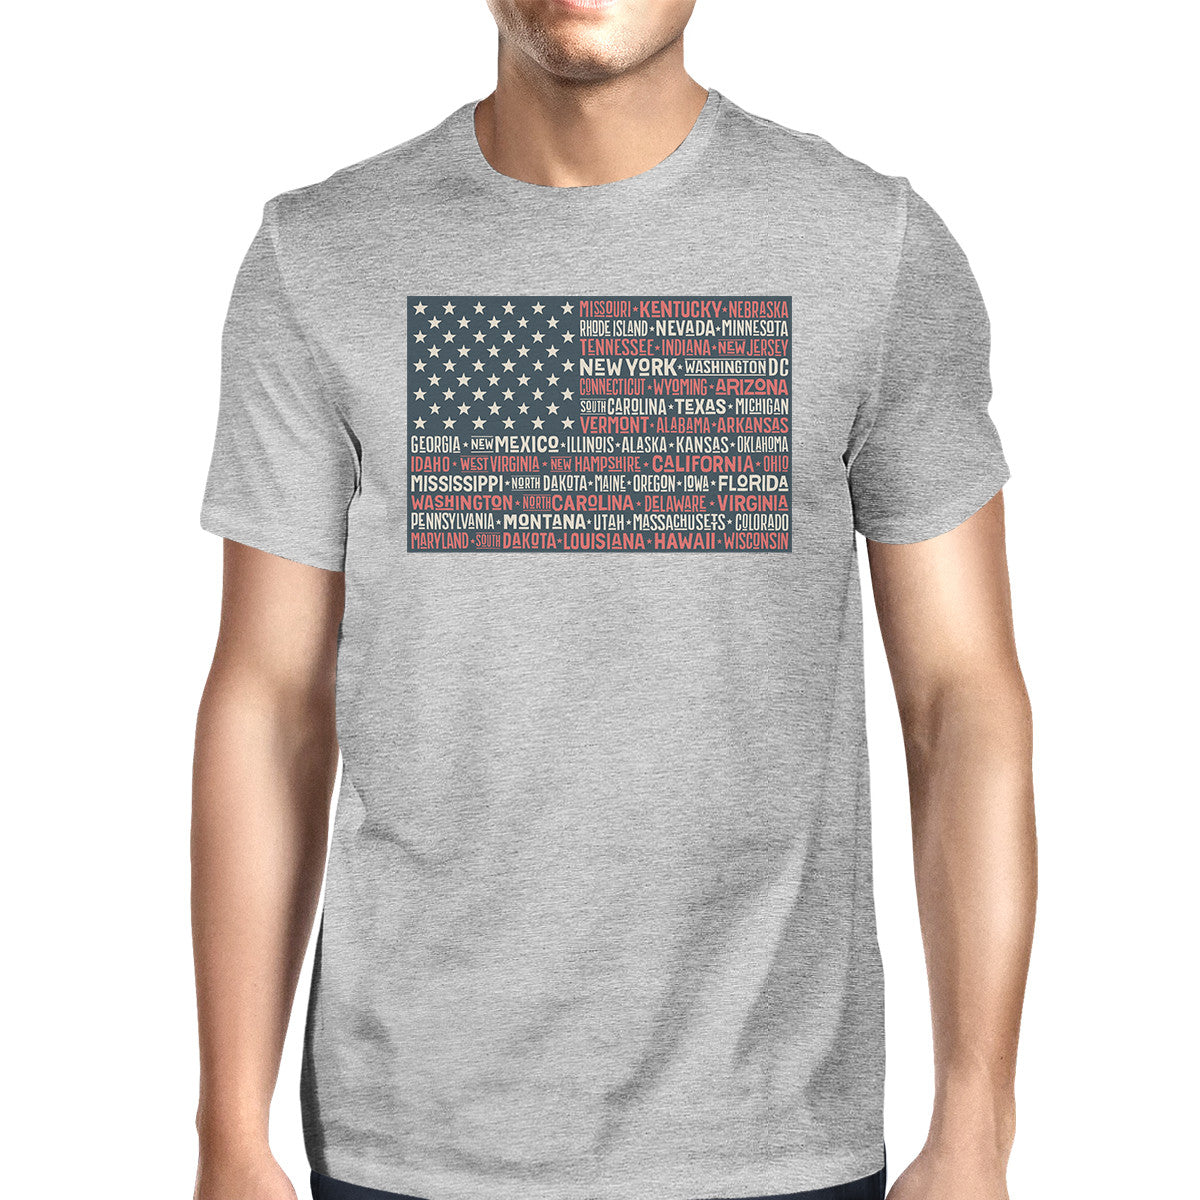 11325396053a3 50 States US Flag American Flag Shirt Mens Gray Cotton Graphic Tee -  365INLOVE